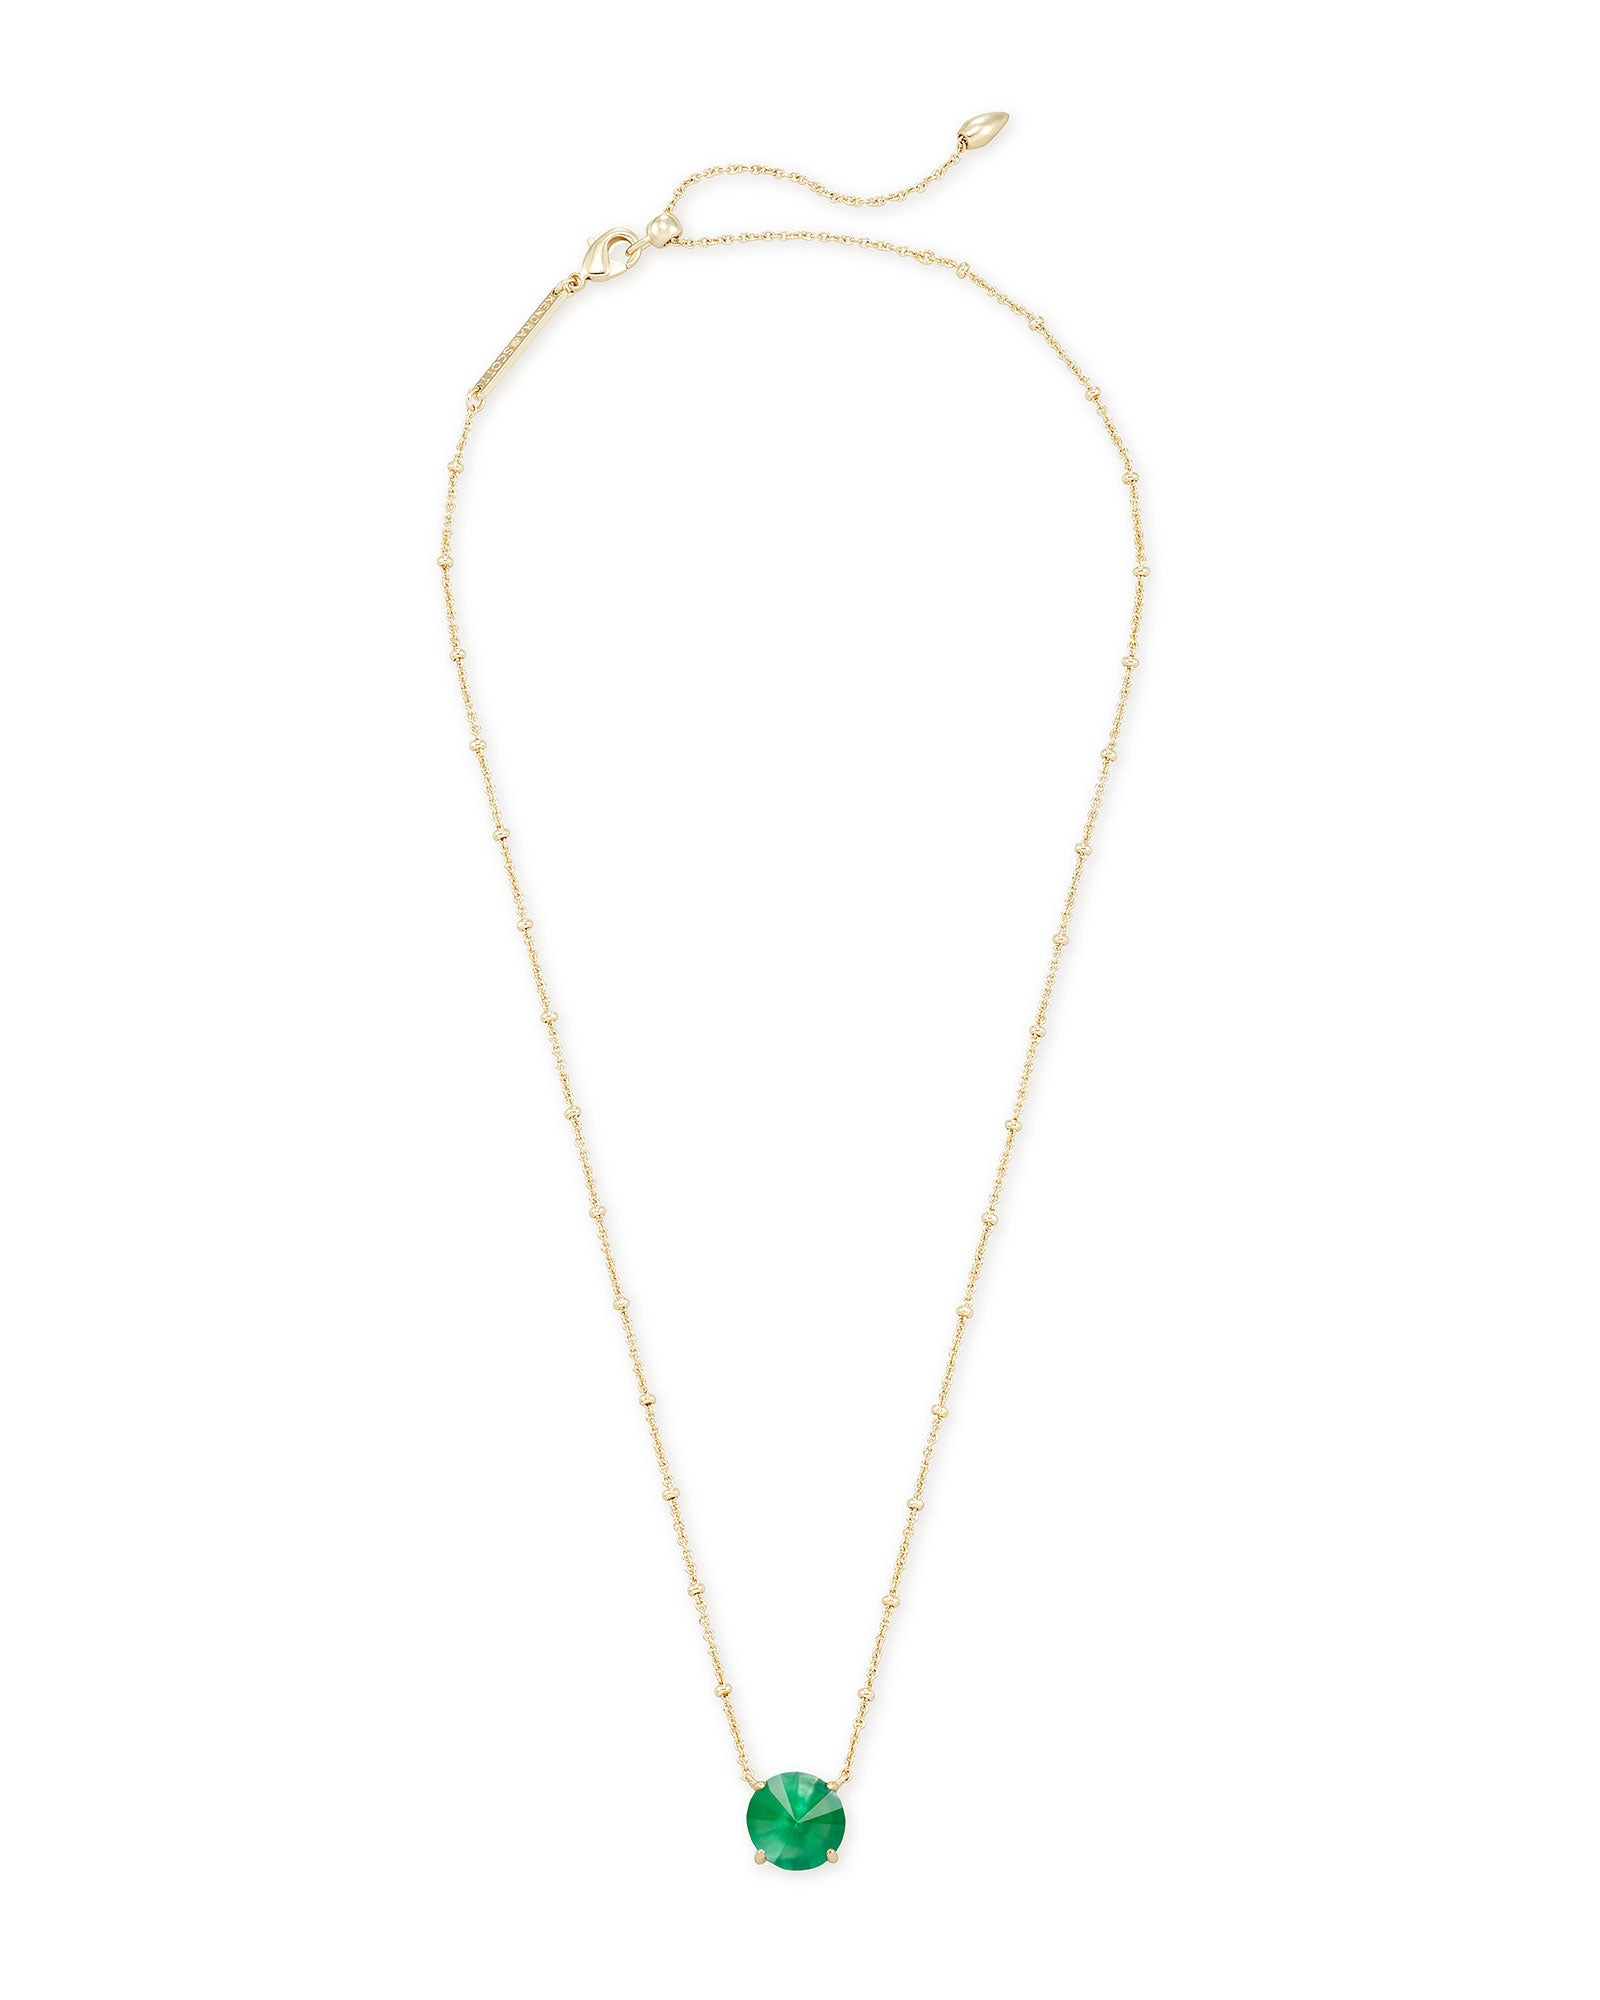 Jolie Gold Pendant Necklace in Jade Green Illusion